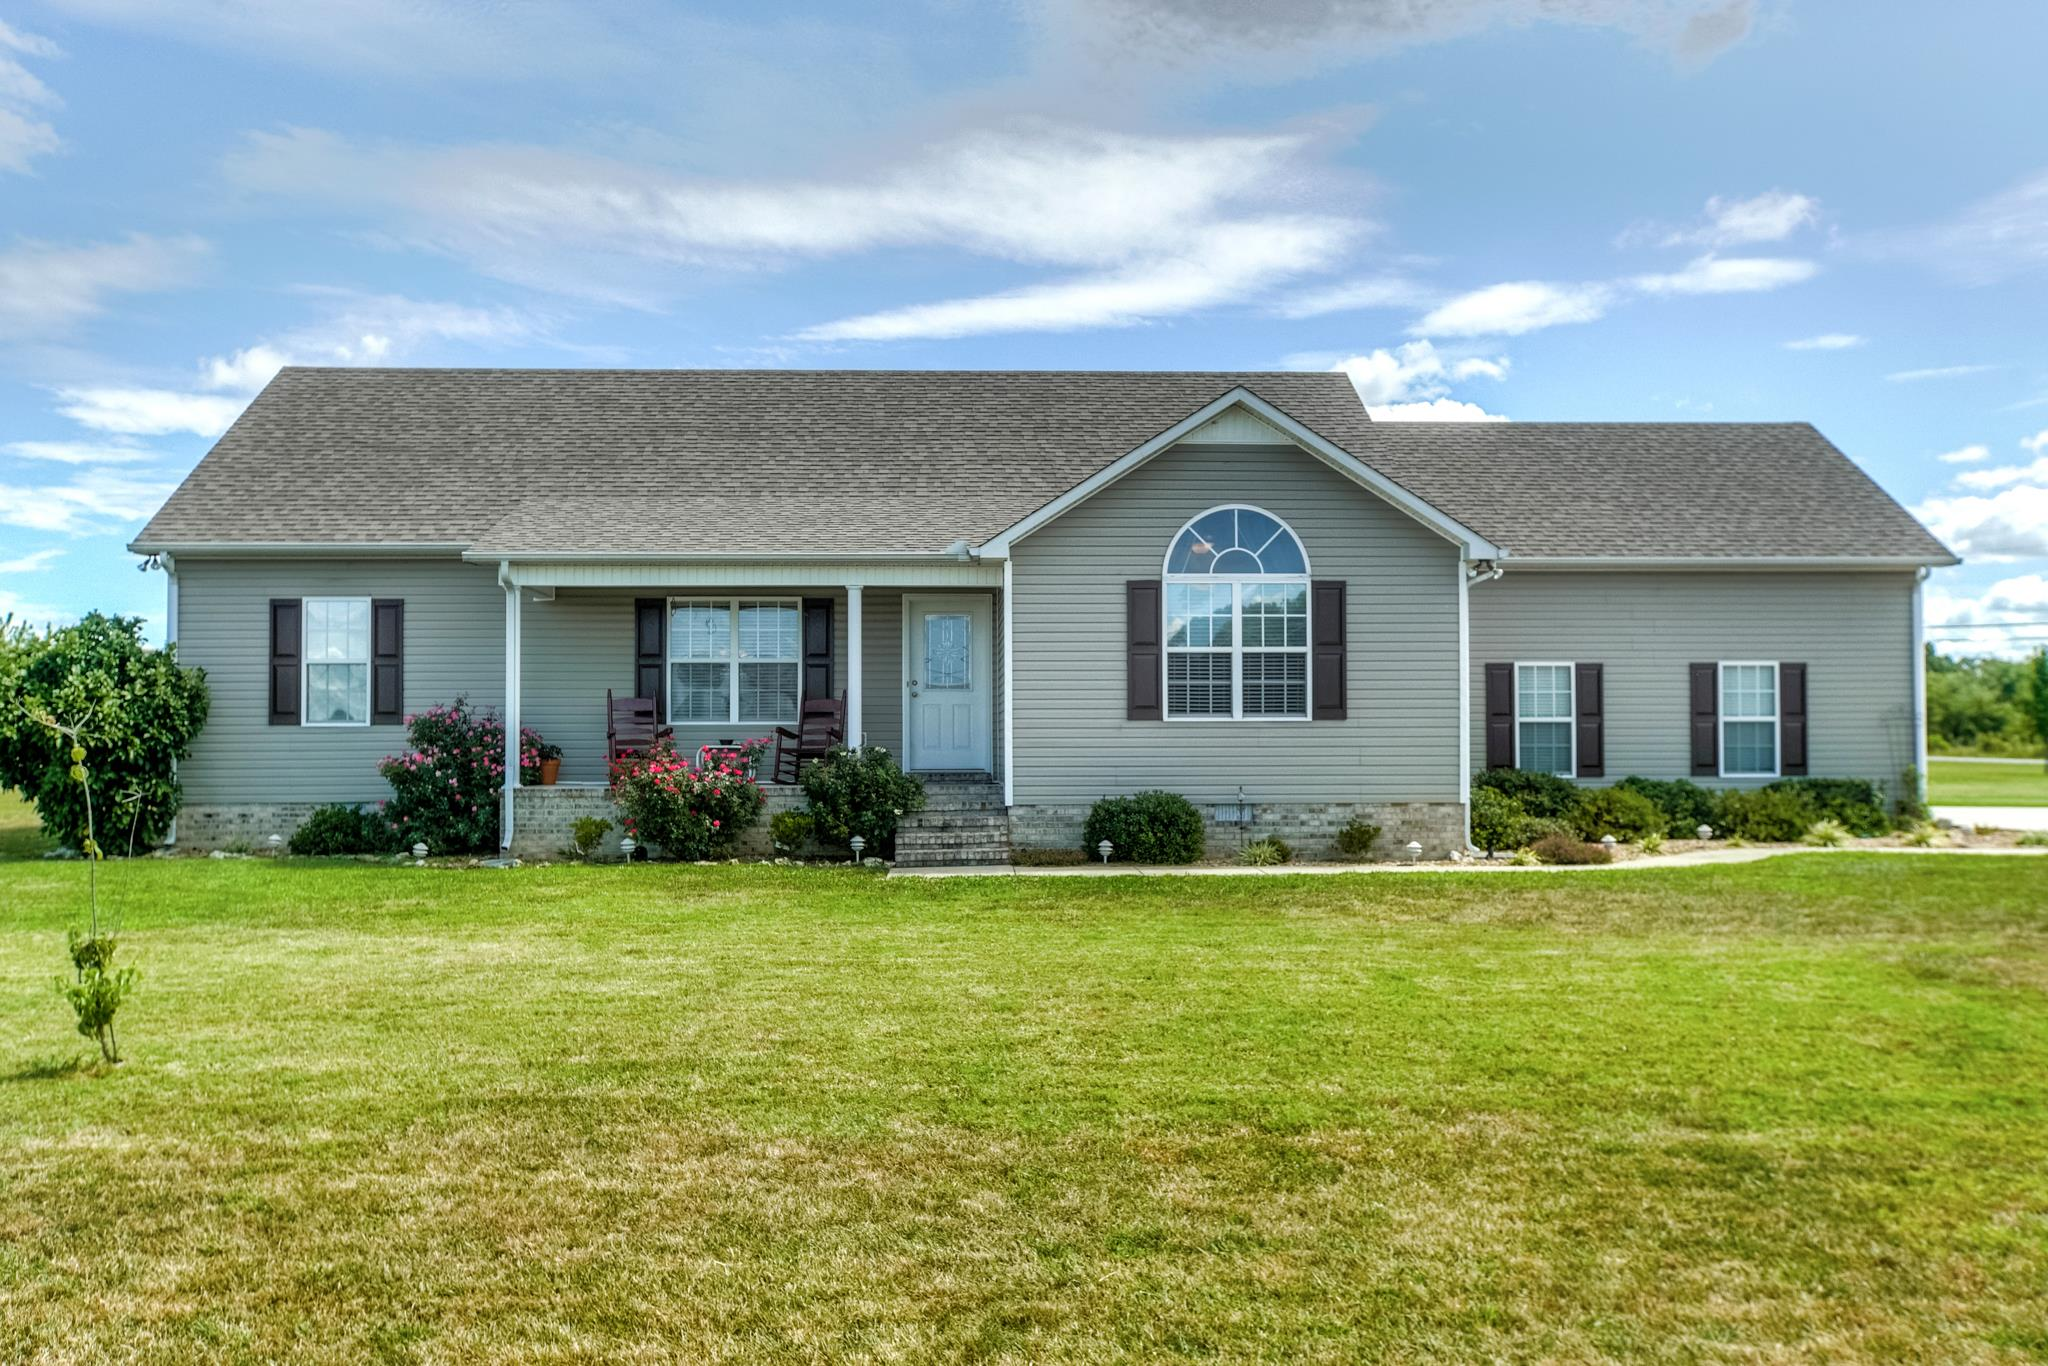 278 Riddle Rd, Manchester, TN 37355